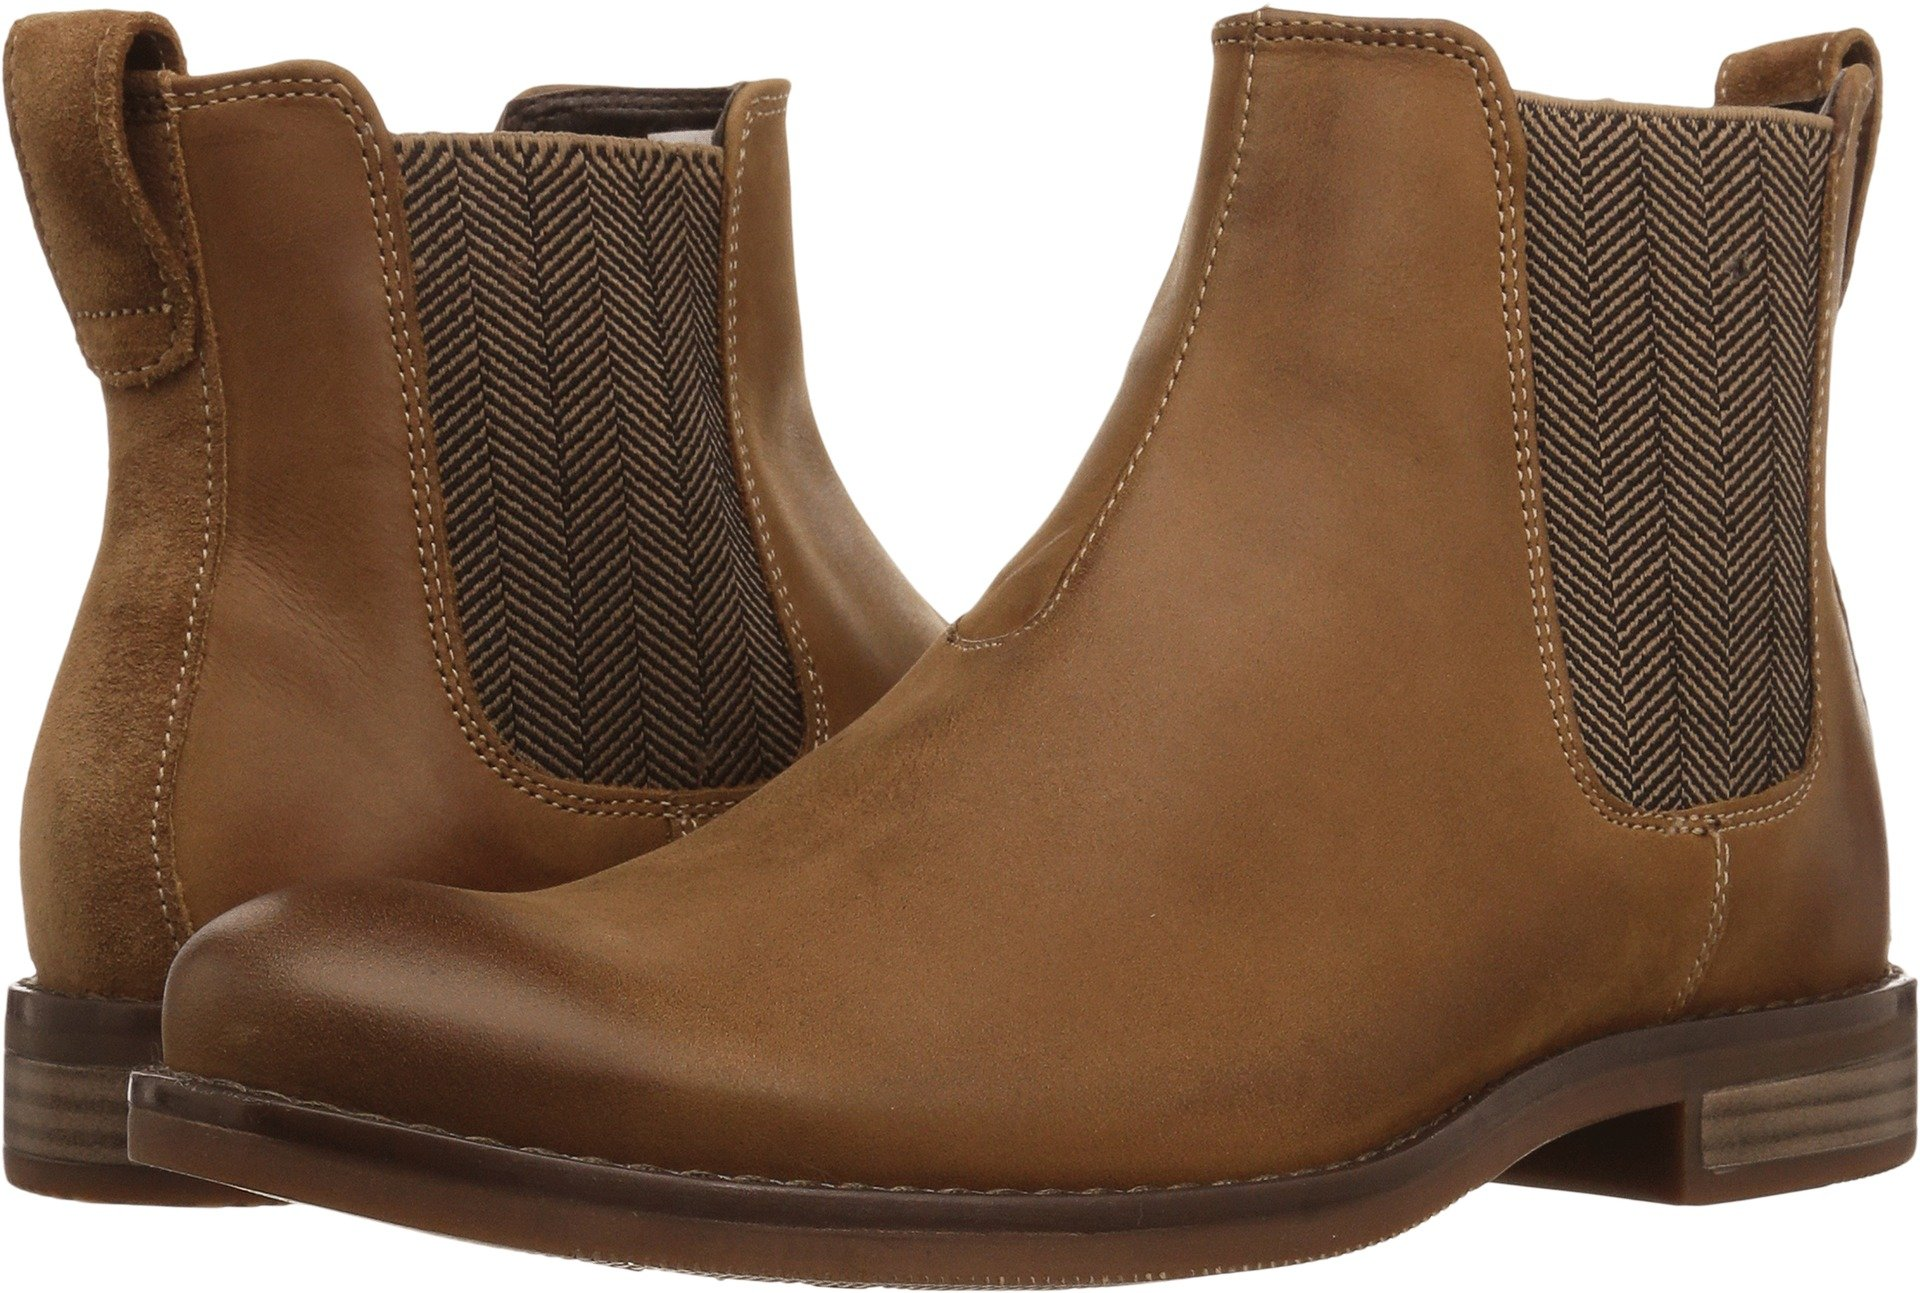 Rockport Men's Wynstin Chelsea Chelsea Boot, Tobacco, 9 M US by Rockport